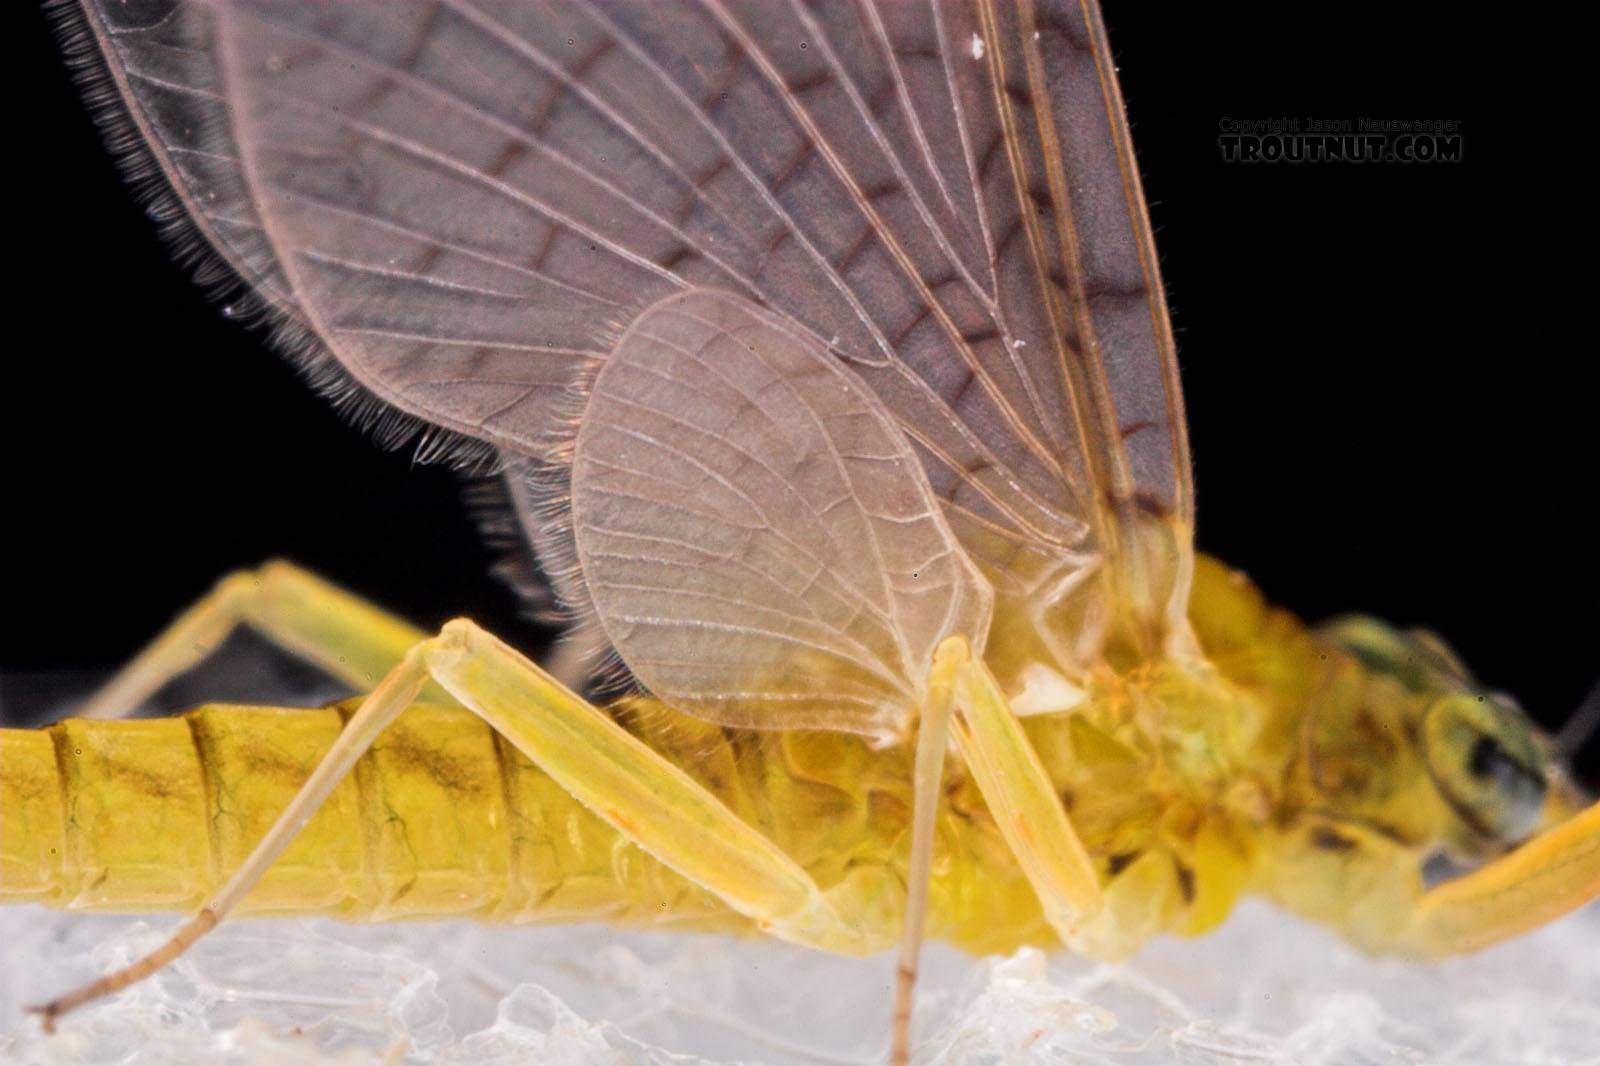 Female Leucrocuta hebe (Little Yellow Quill) Mayfly Dun from Mystery Creek #43 in New York